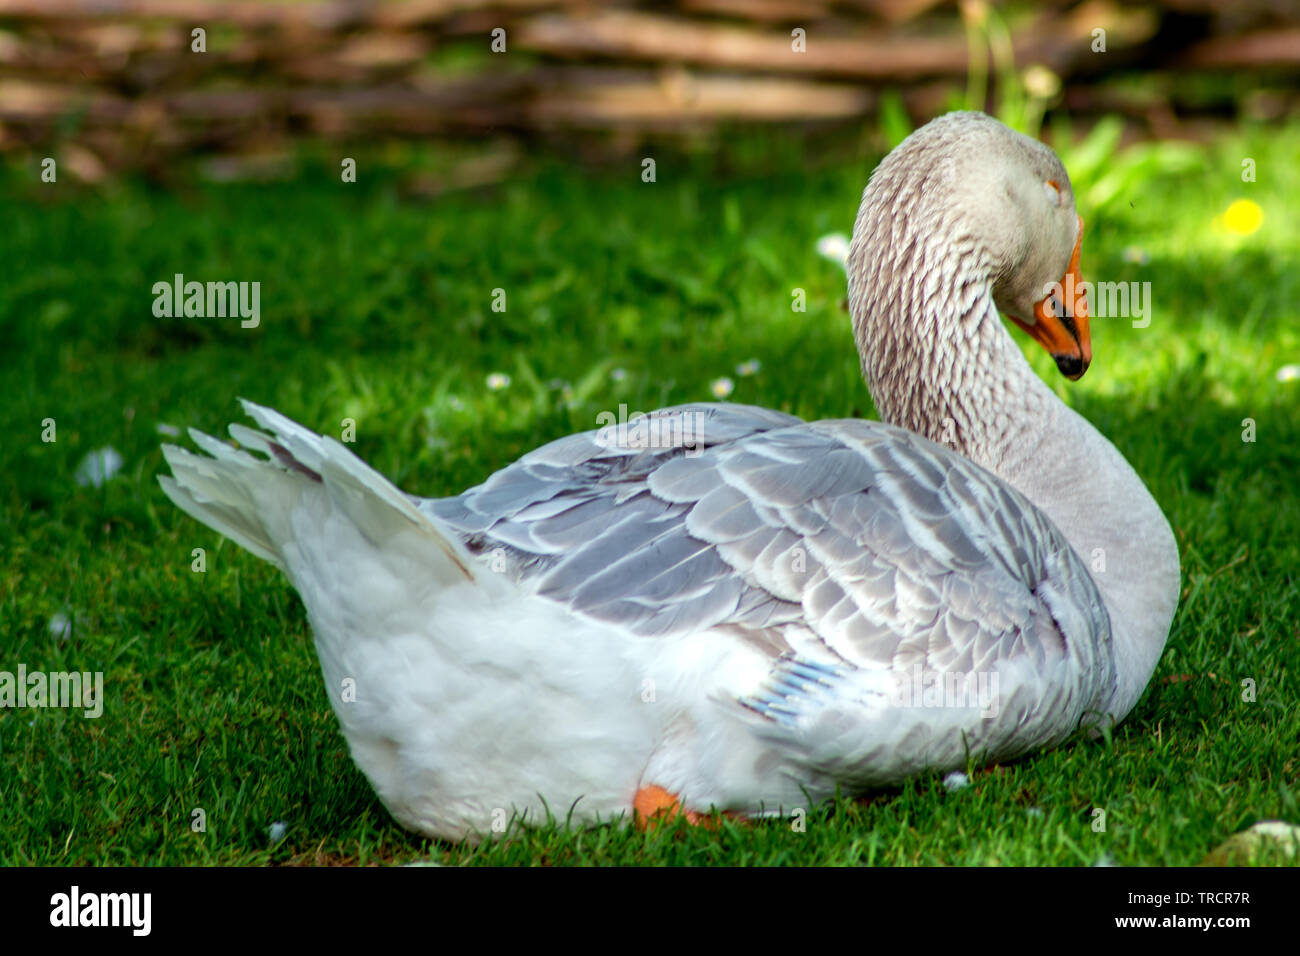 The lazy goose - Stock Image